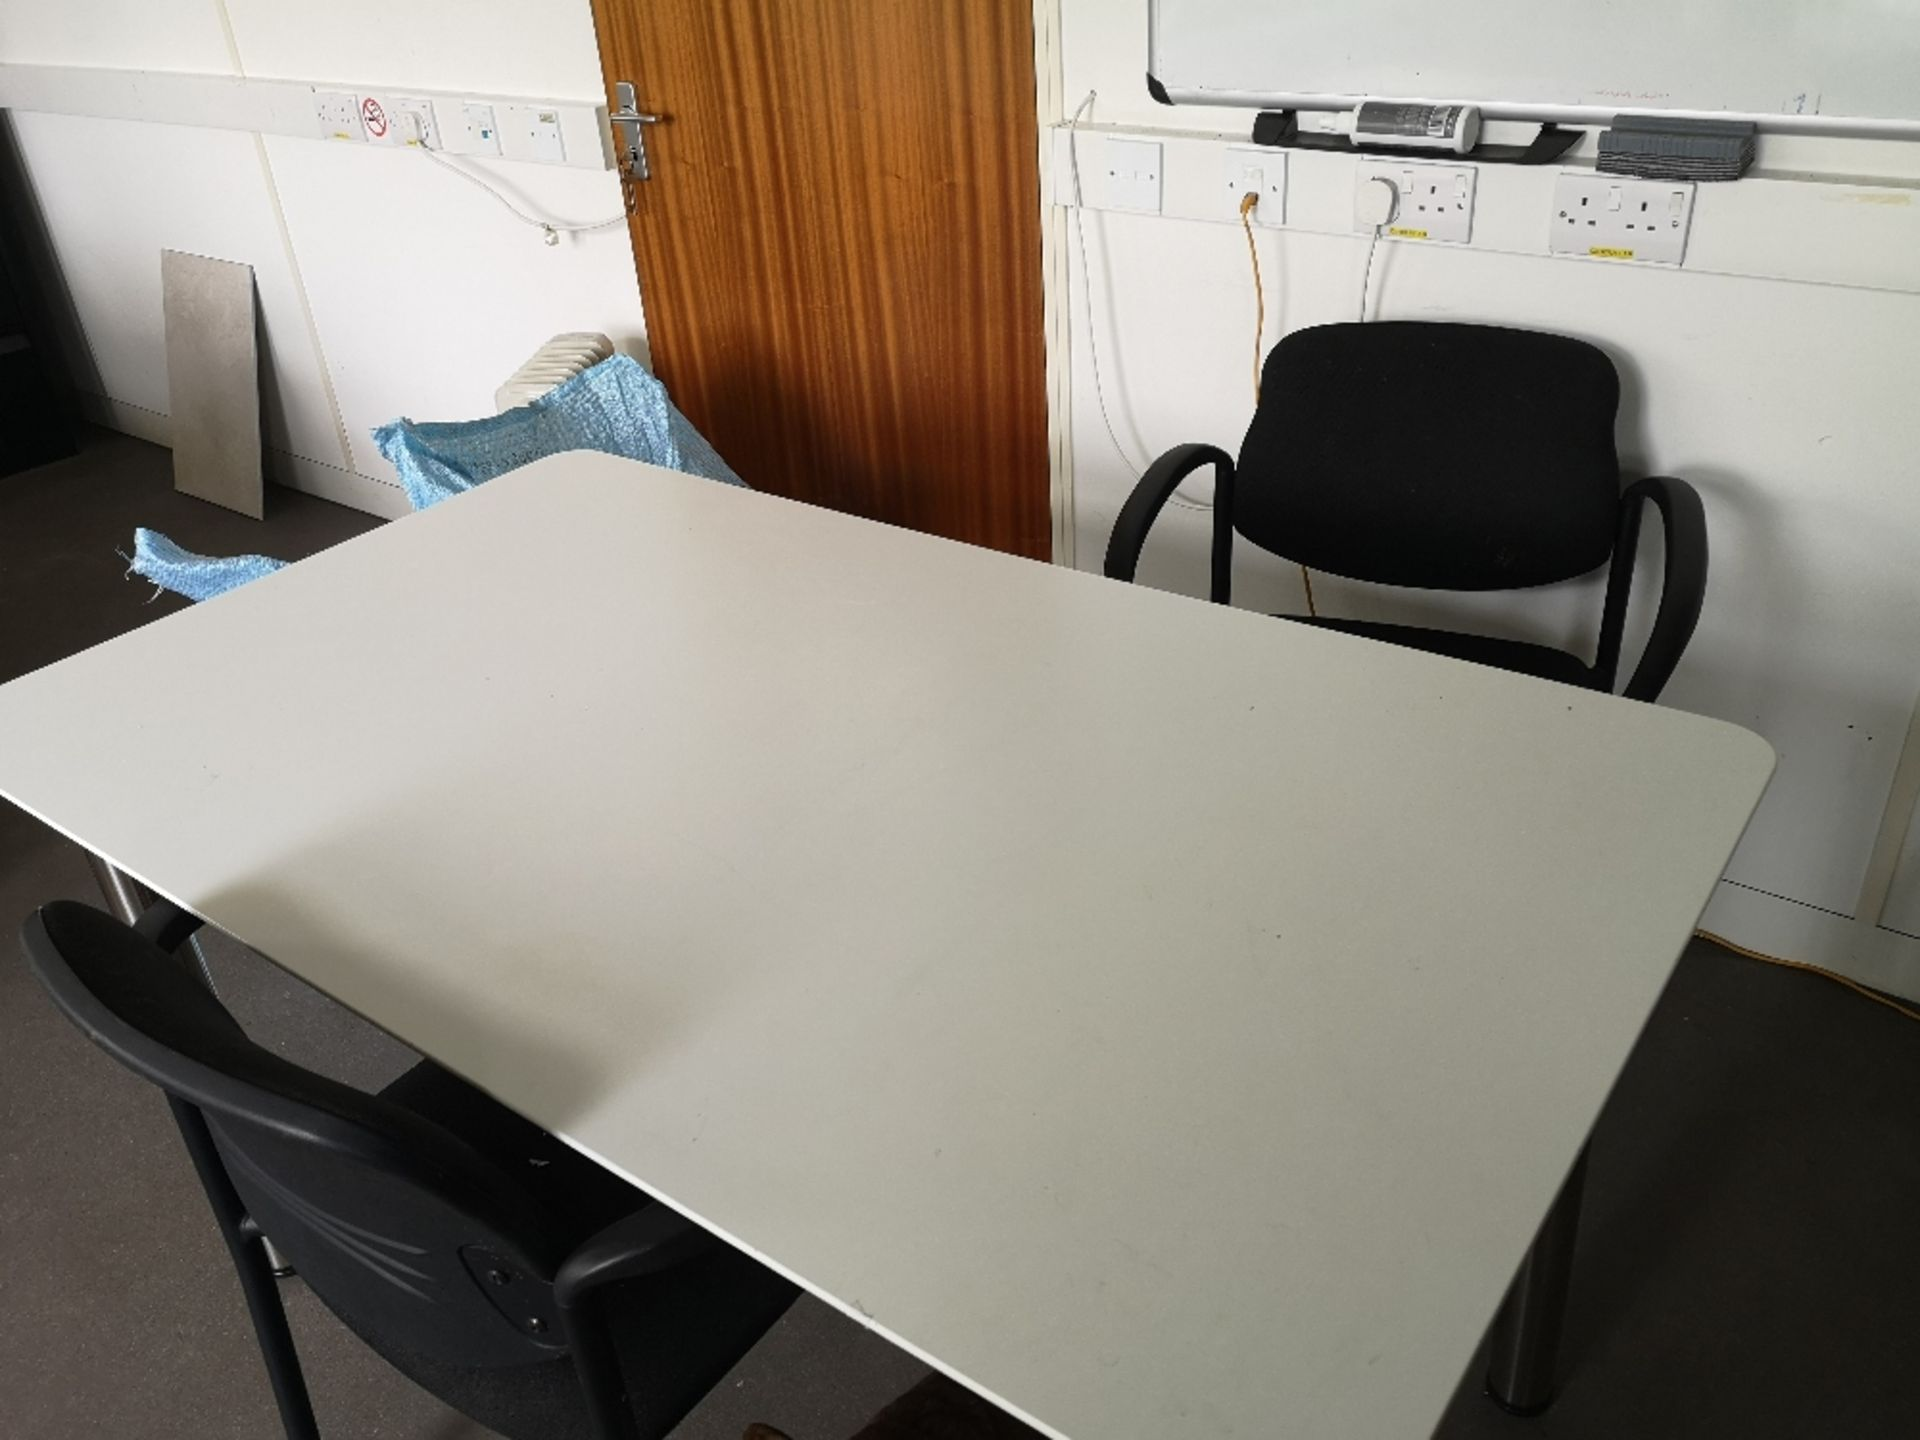 Office Furniture Contents of Room - Image 2 of 9